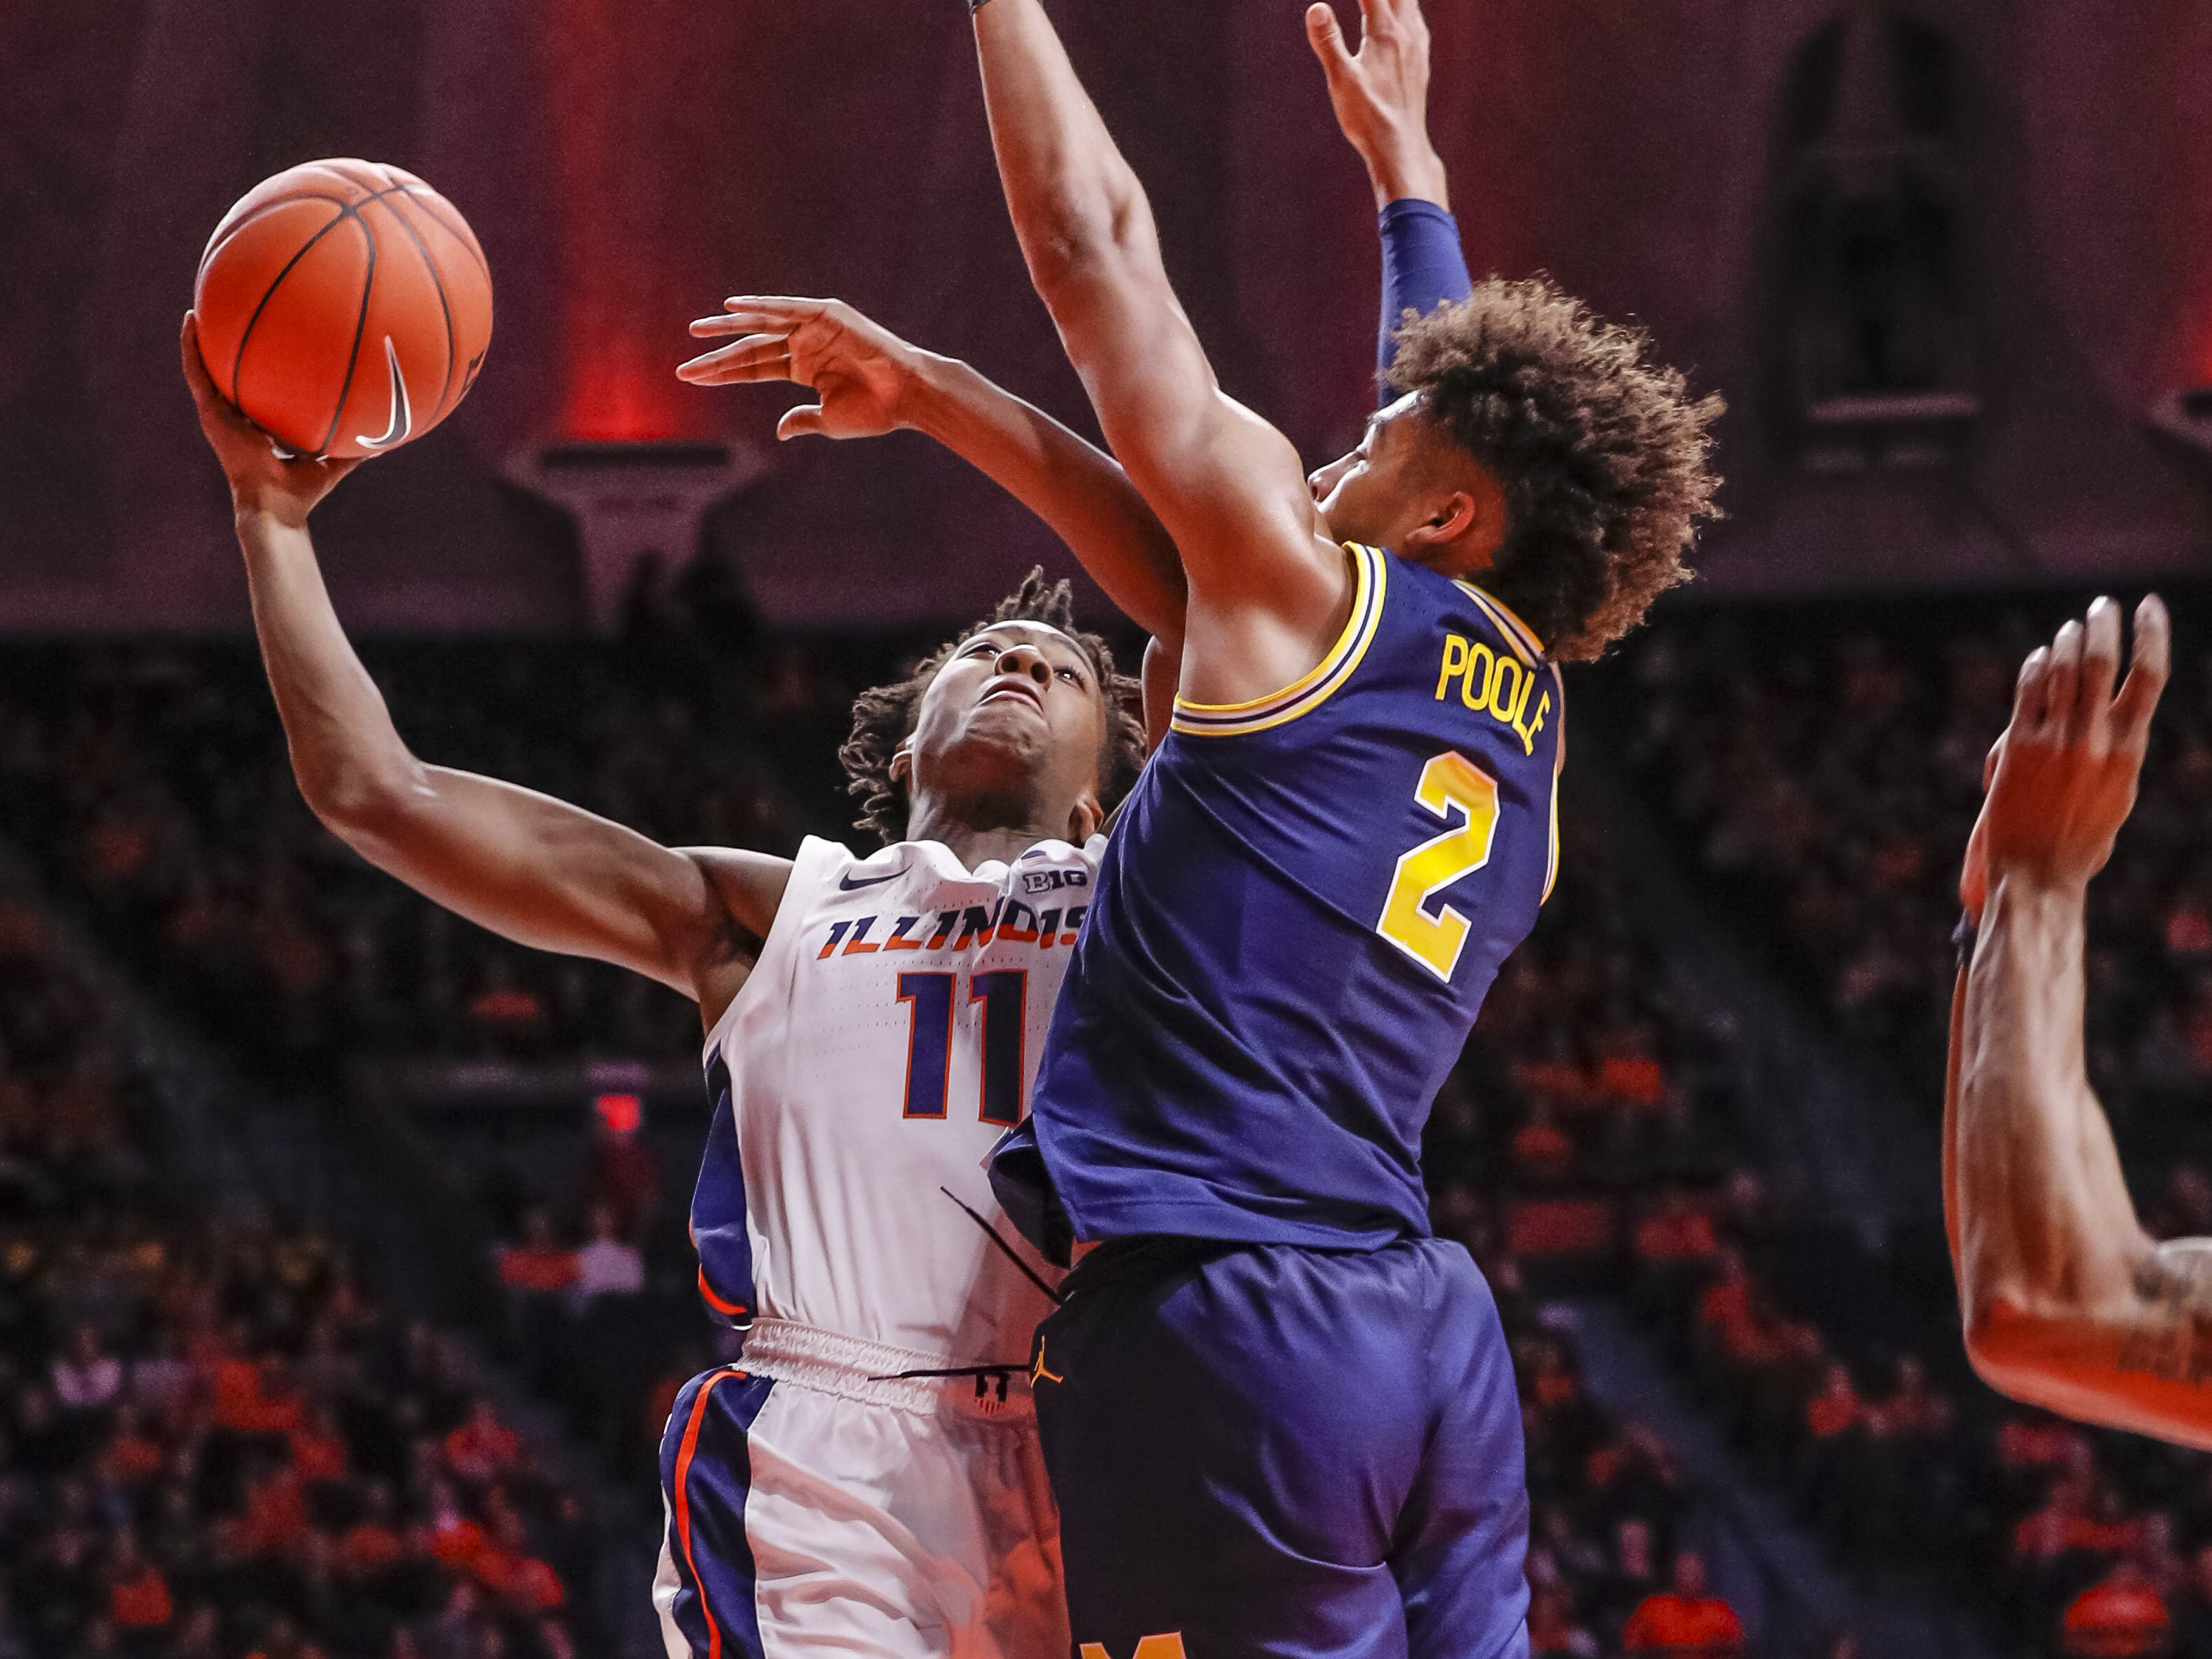 1080501130.jpg CHAMPAIGN, IL - JANUARY 10: 2Ayo Dosunmu #11 of the Illinois Fighting Illini shoots the ball against Jordan Poole #2 of the Michigan Wolverines during the first half action at State Farm Center on January 10, 2019 in Champaign, Illinois.